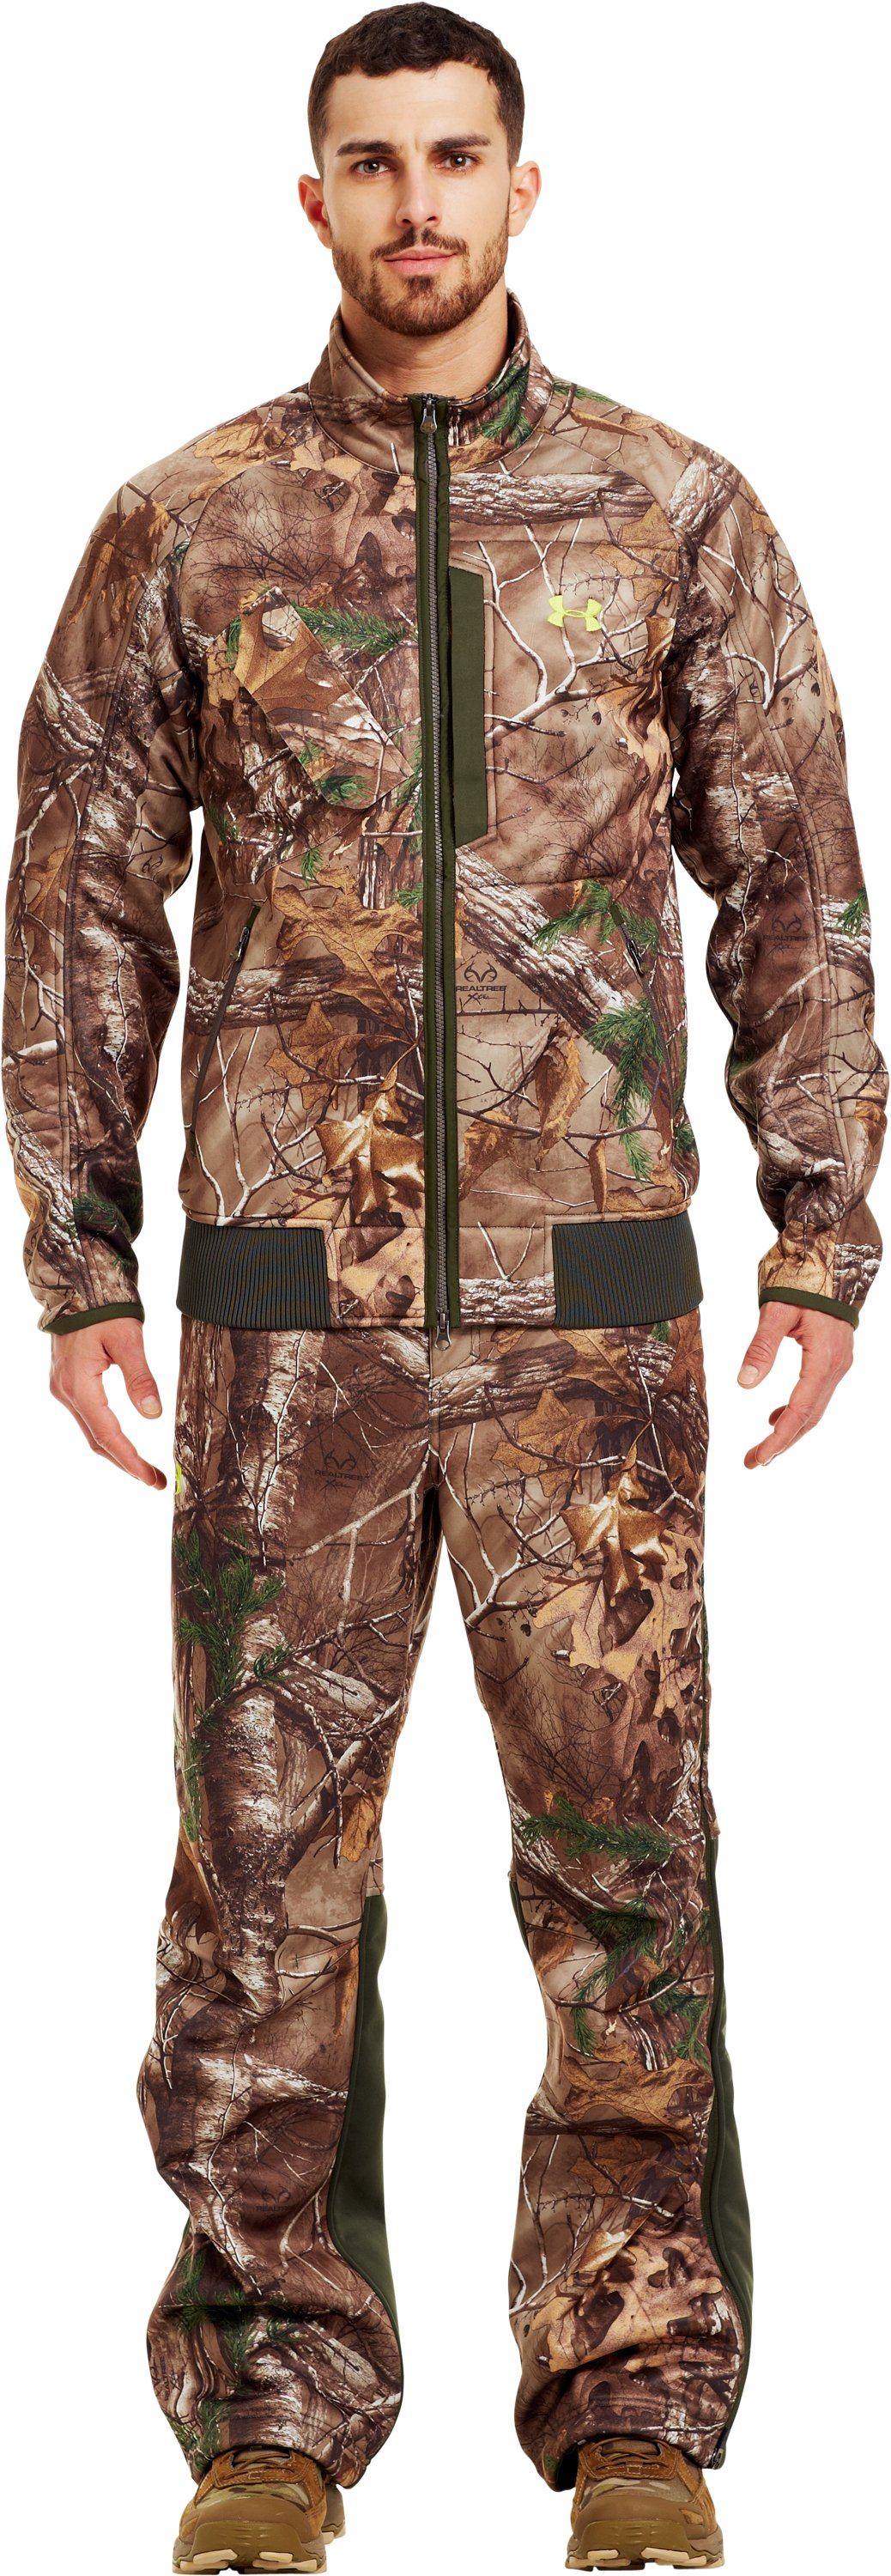 Men's UA Deadcalm Scent Control Jacket, REALTREE AP-XTRA